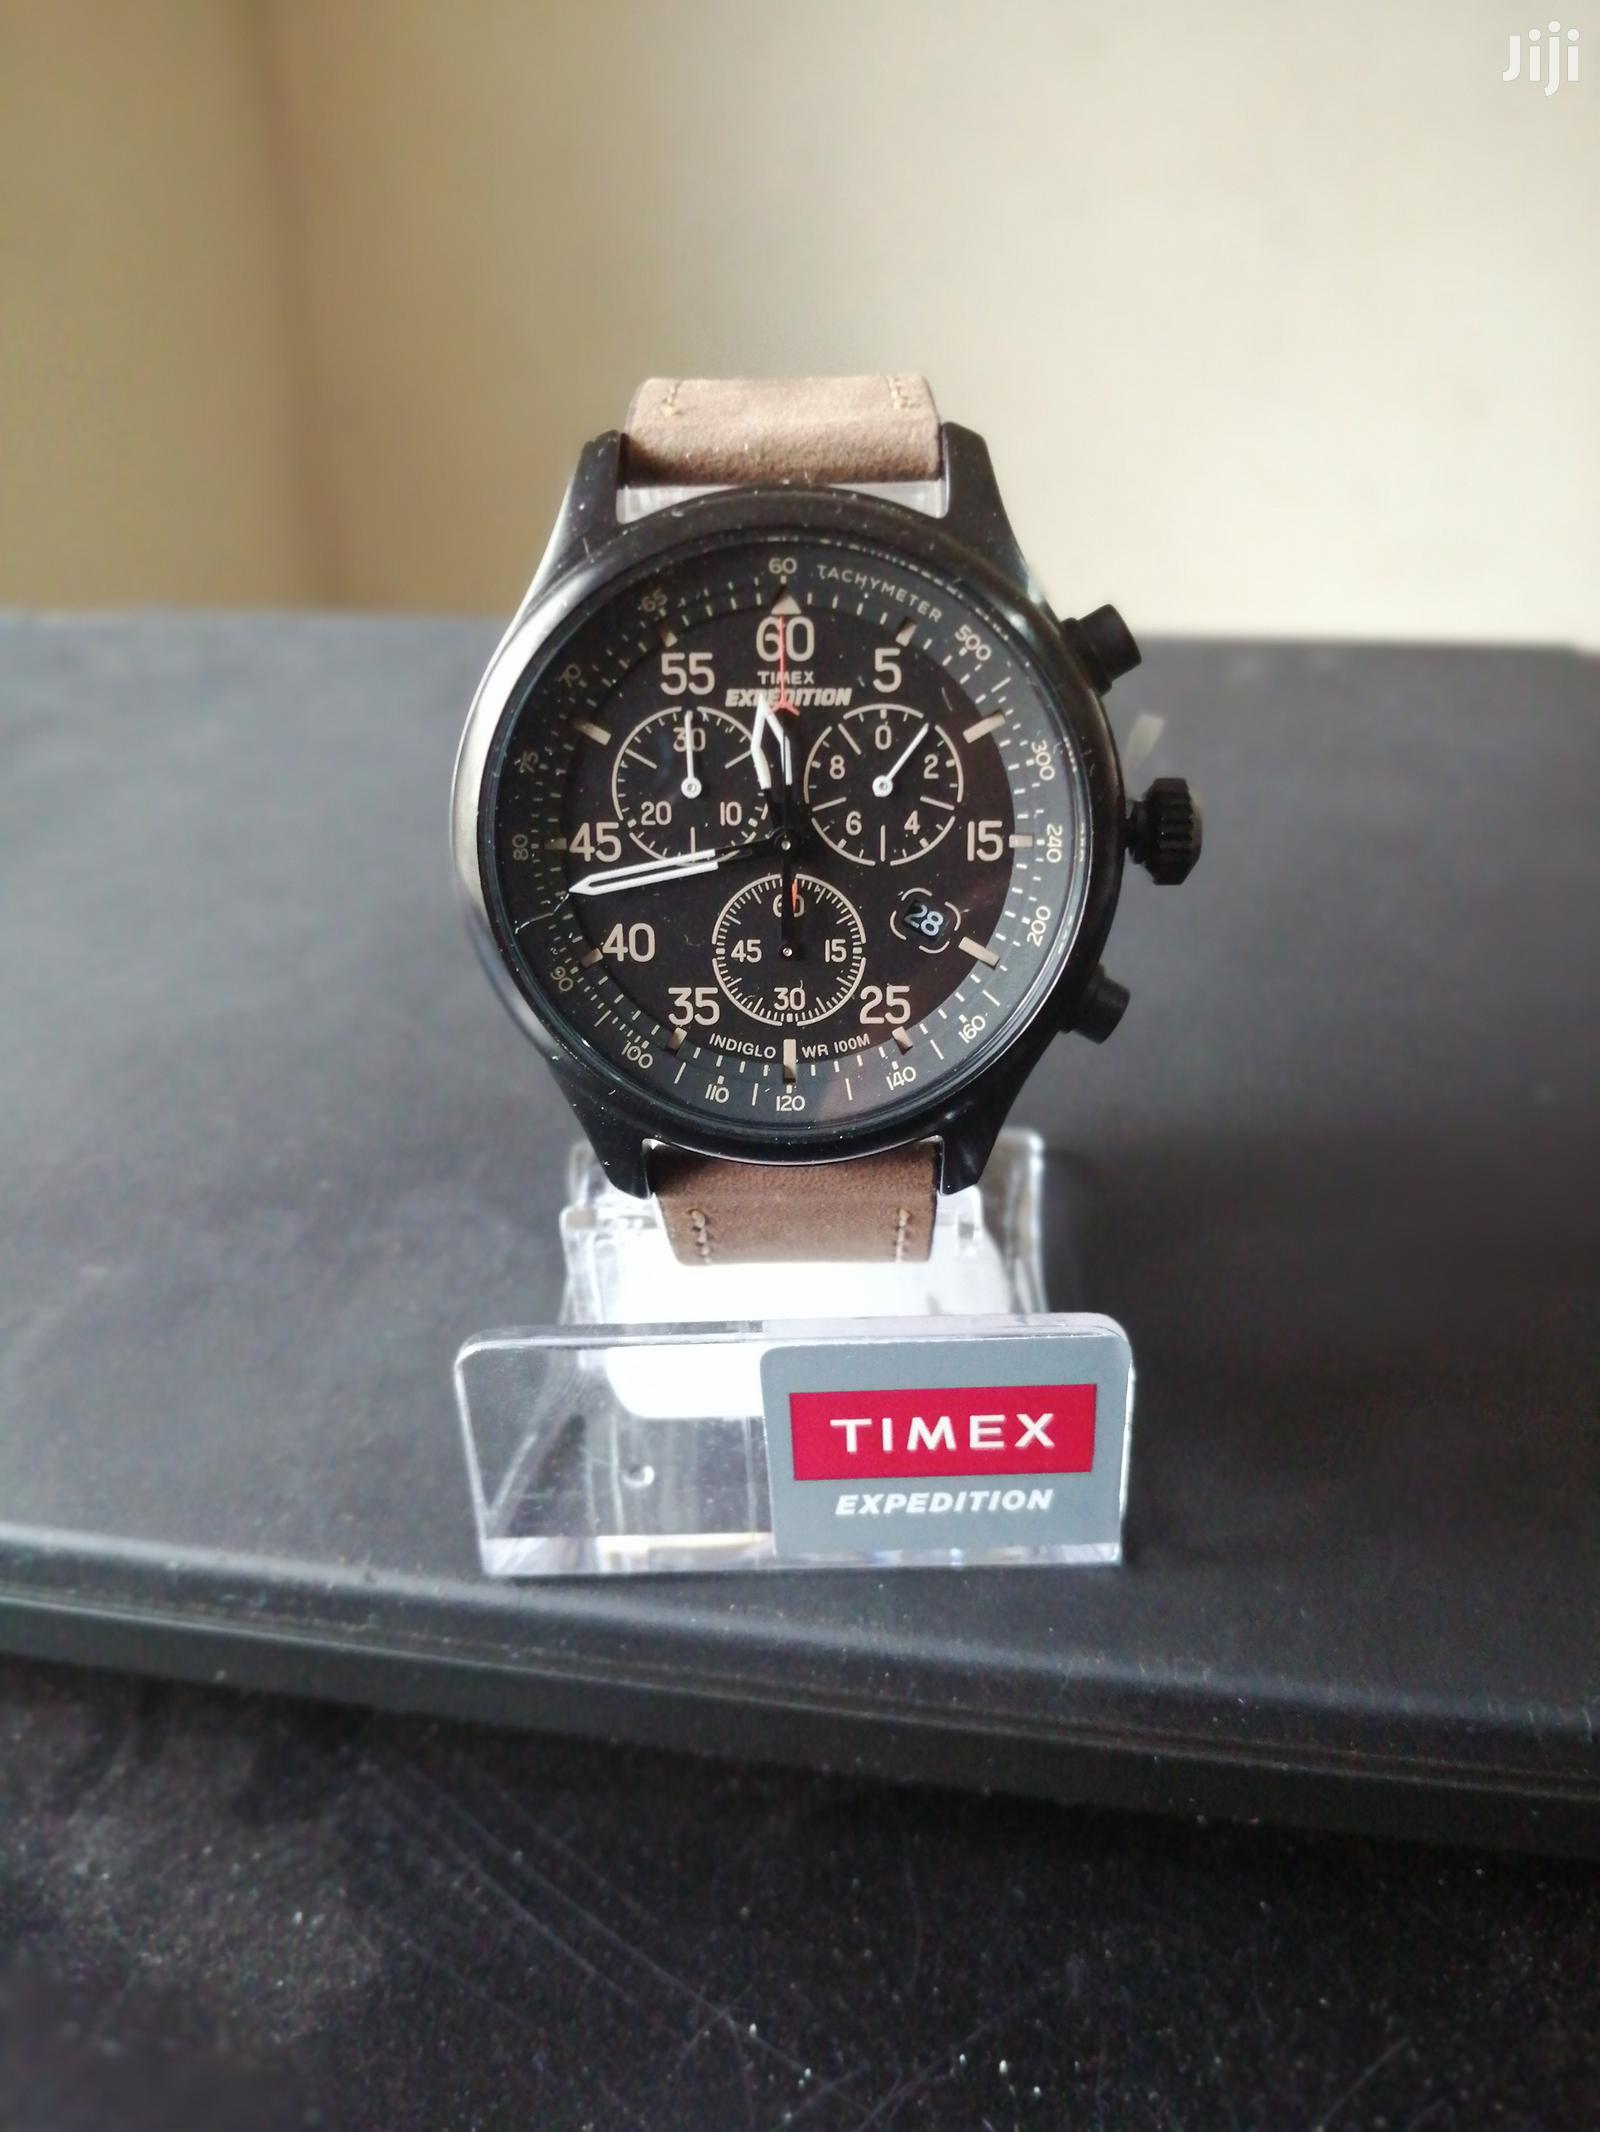 Archive: Brand New Men's Expedition Field Chronograph Watch